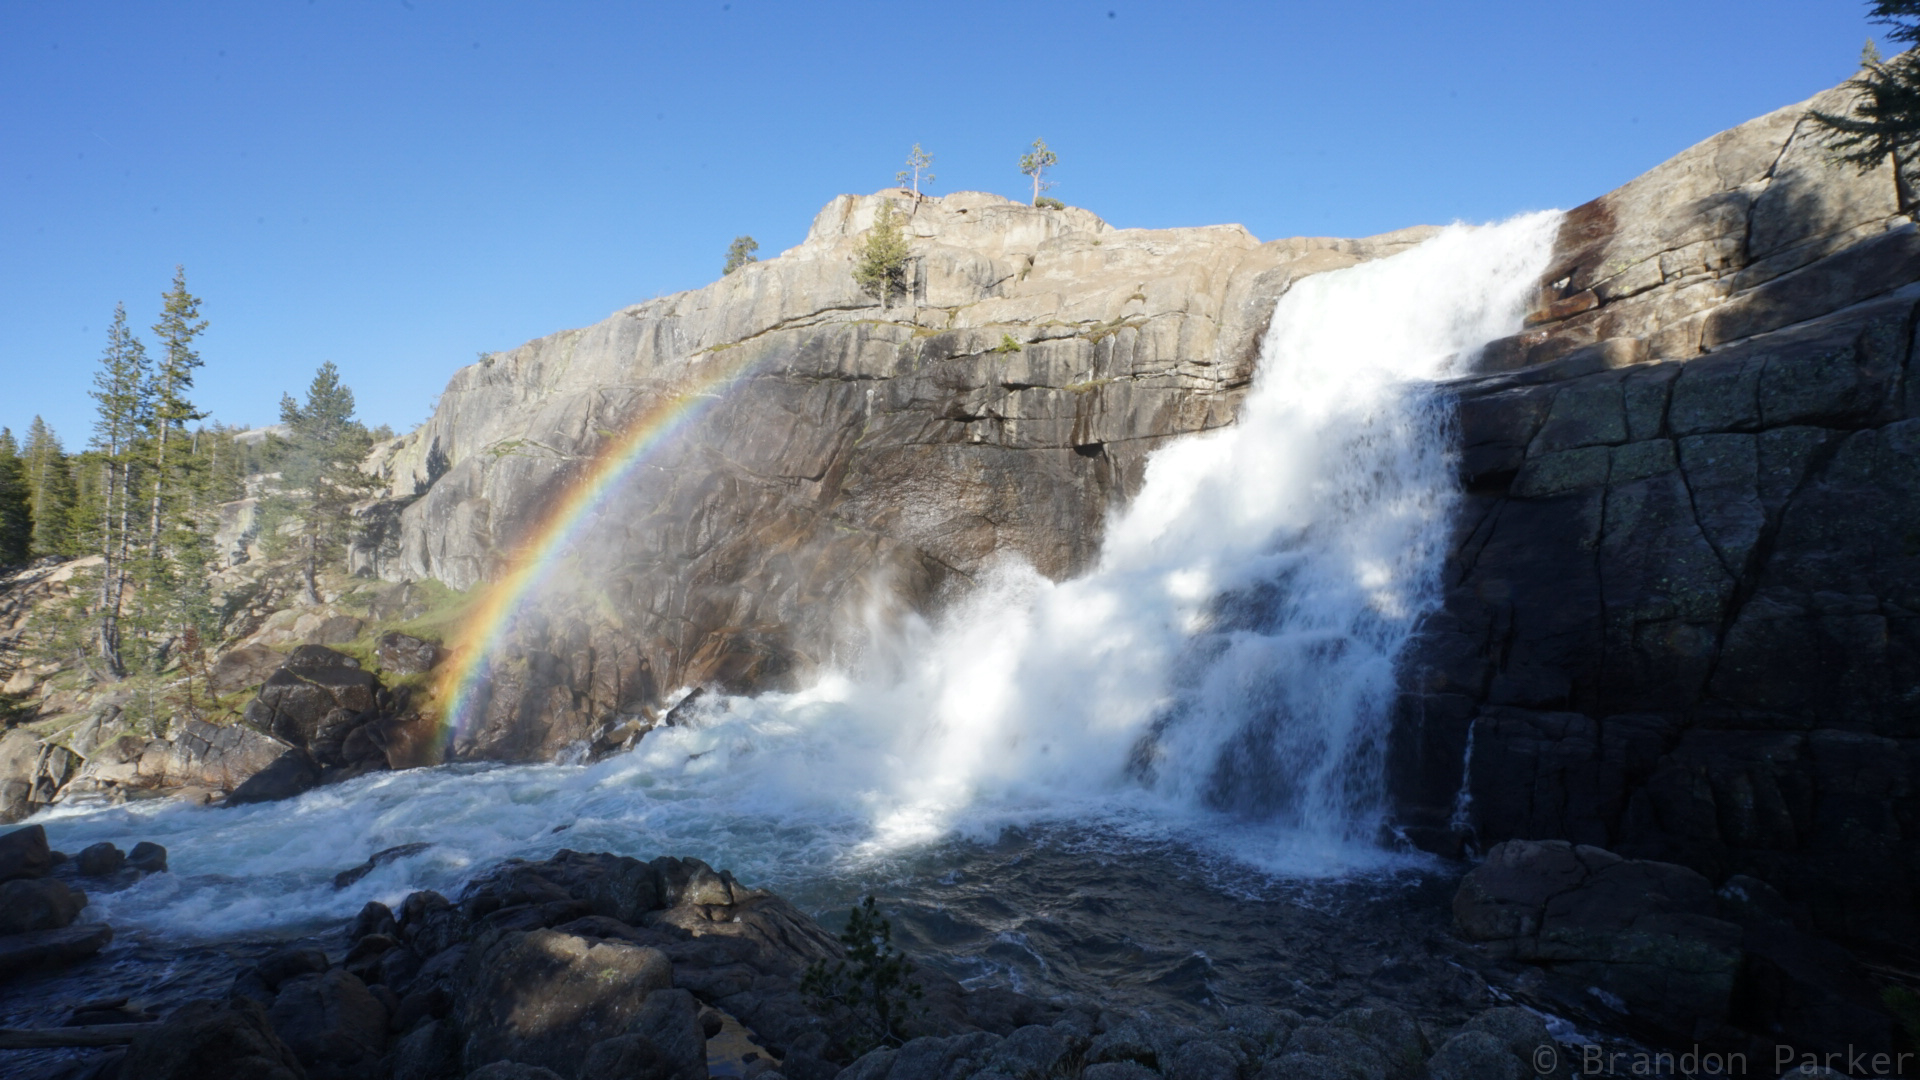 Rainbow caused by waterfall spray just outside of Yosemite Valley